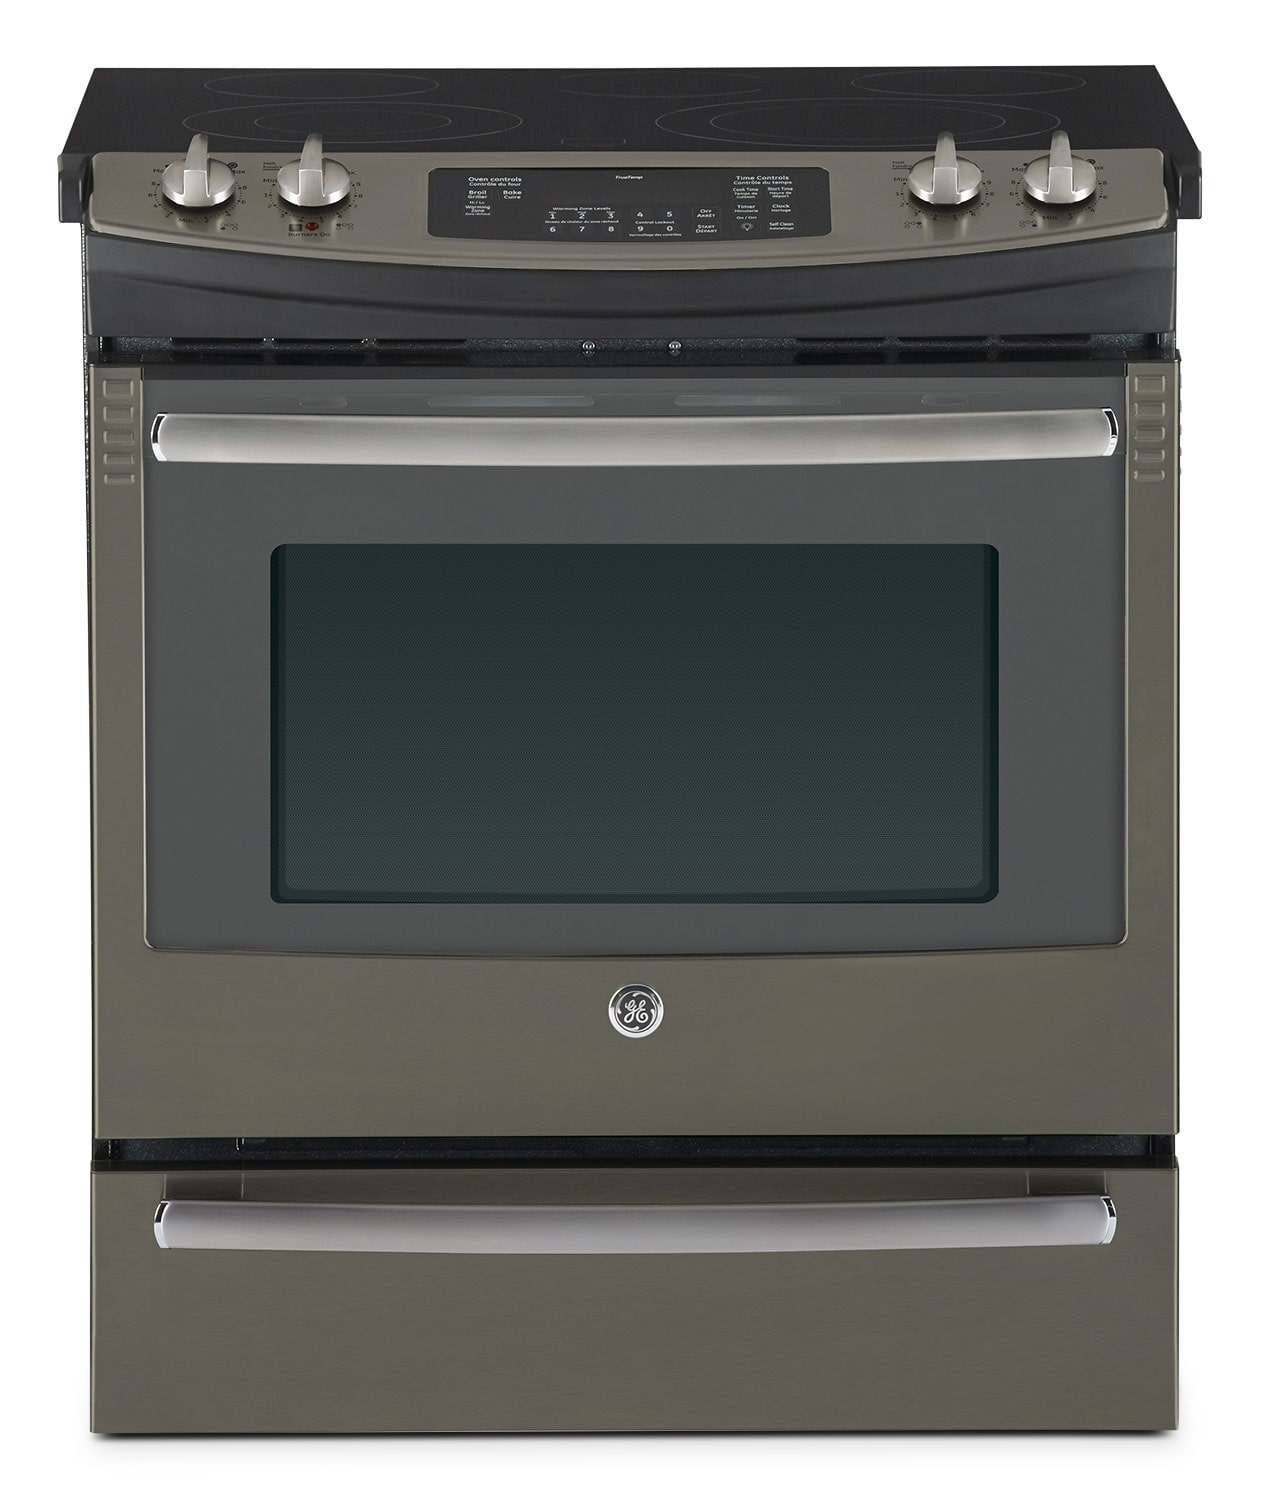 ge slate slide in electric range 5 2 cu ft jcs860efes leon 39 s